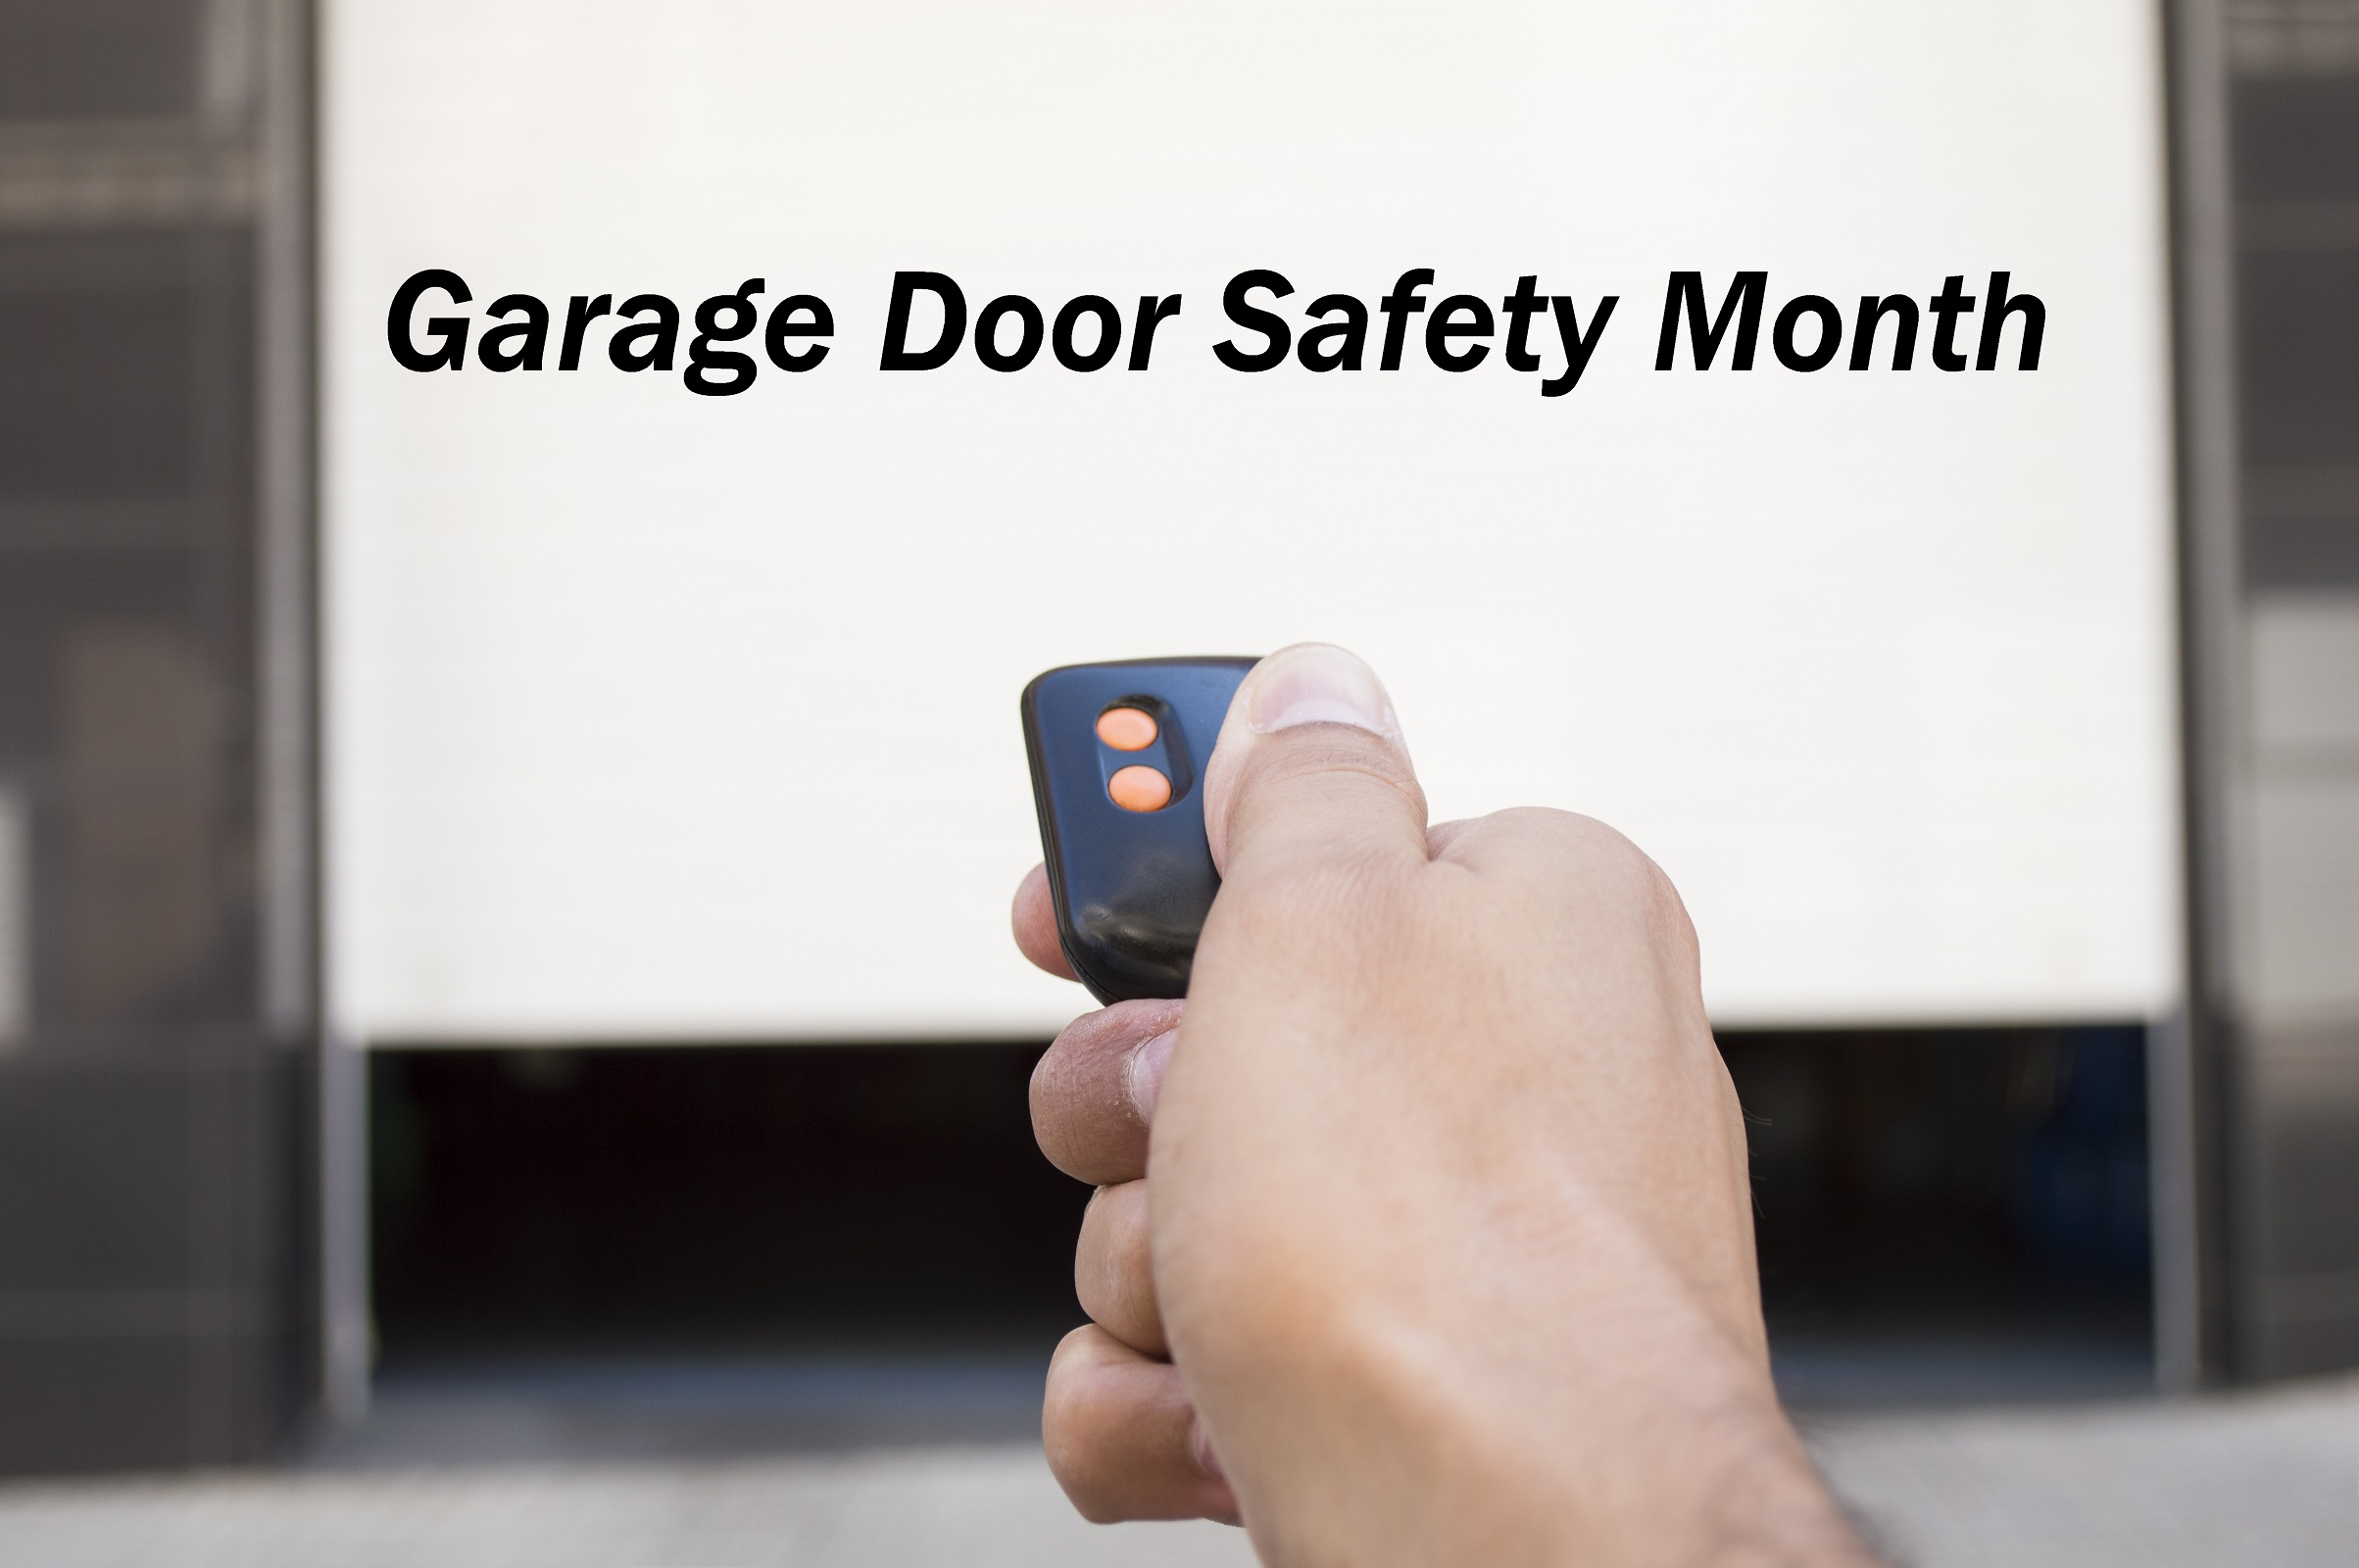 safety month